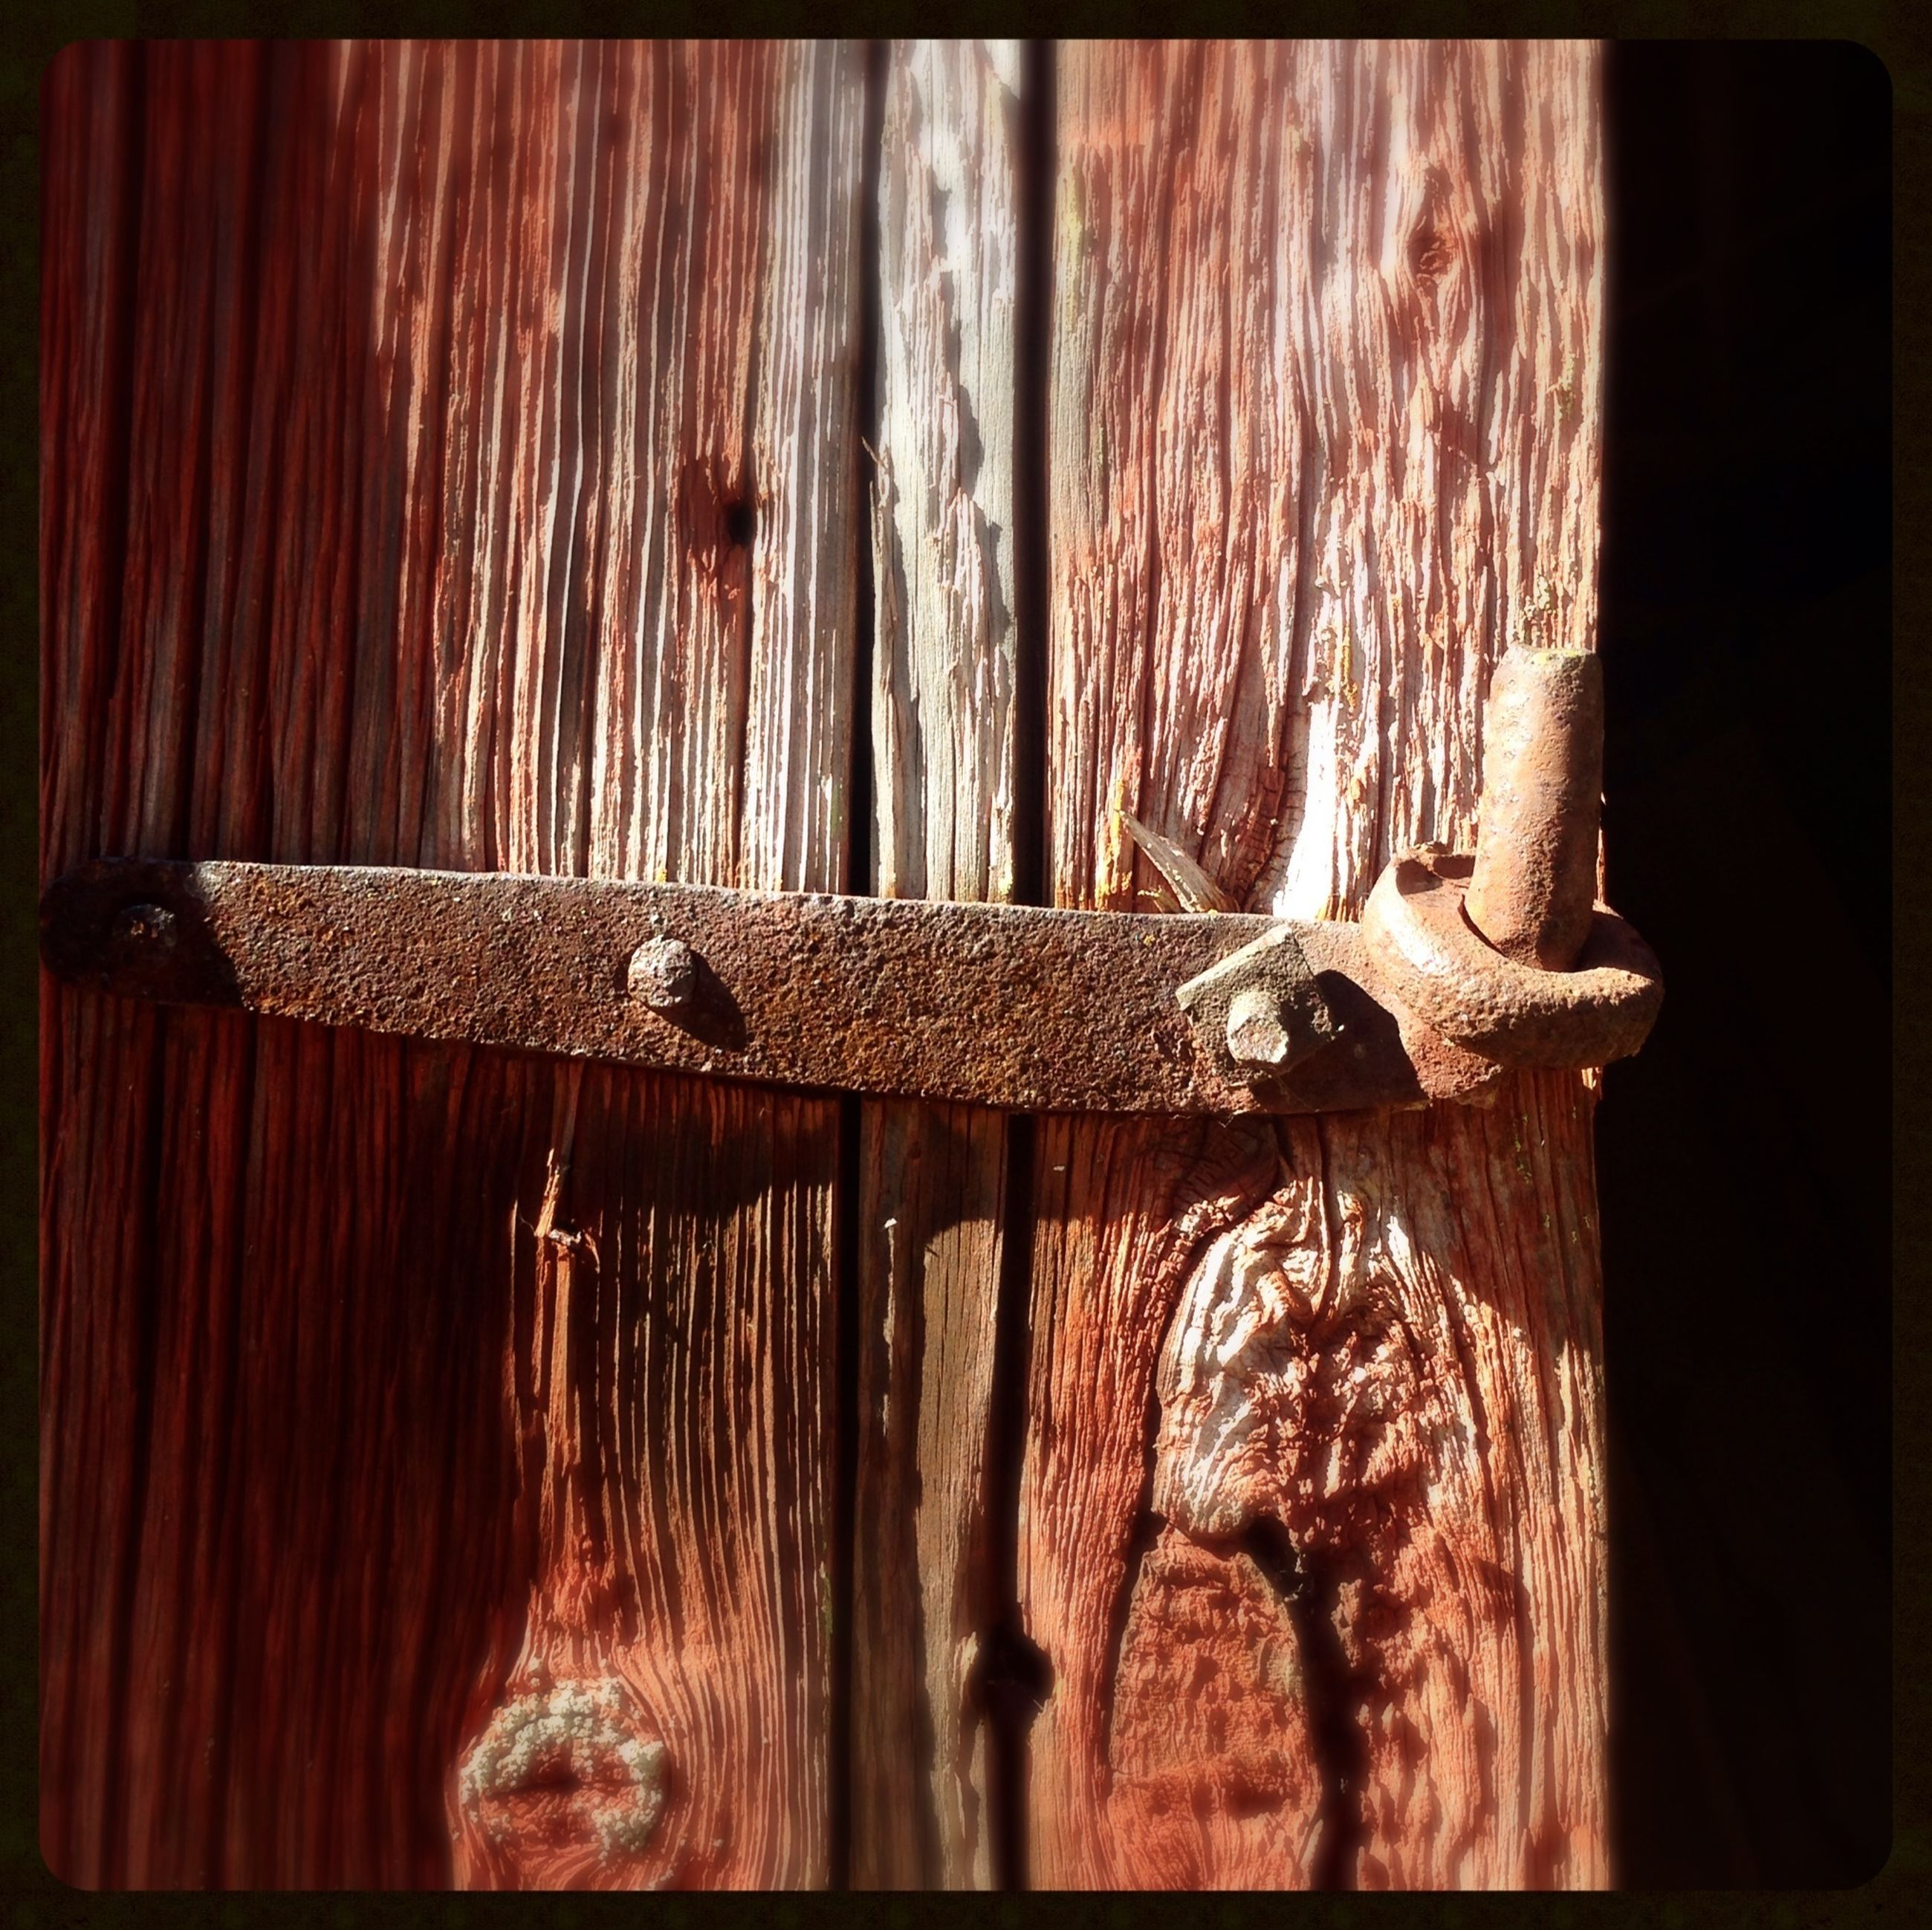 wood - material, indoors, close-up, wooden, old, wood, still life, rusty, metal, no people, wall - building feature, hanging, day, textured, weathered, art and craft, auto post production filter, table, wall, plank